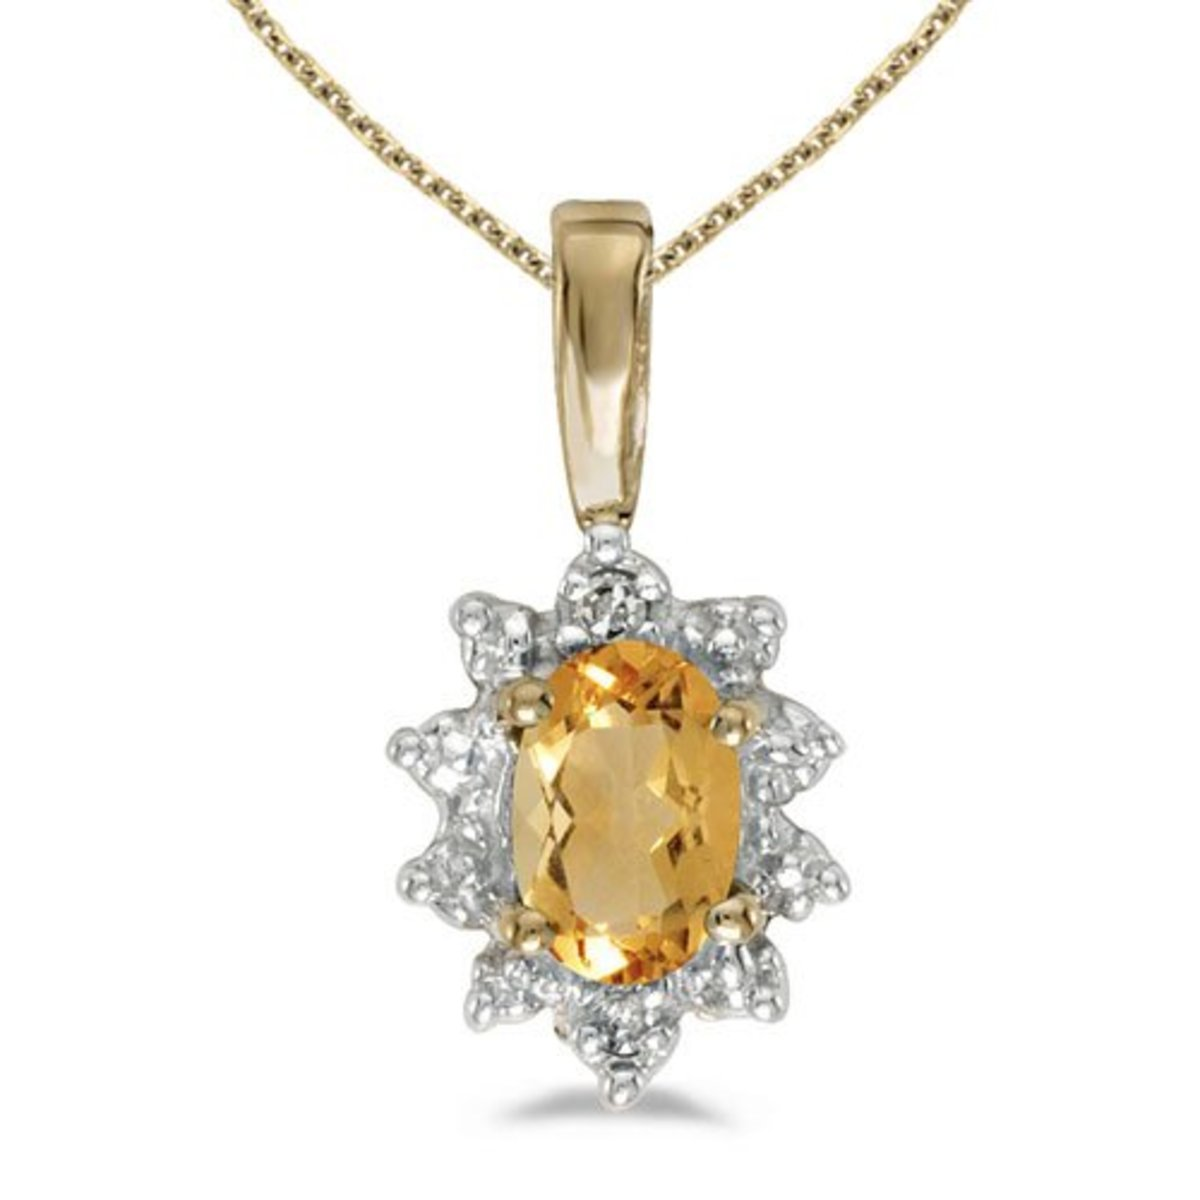 gift-ideas-for-a-november-born-girl-november-birthstones-topaz-and-citrine-jewelry